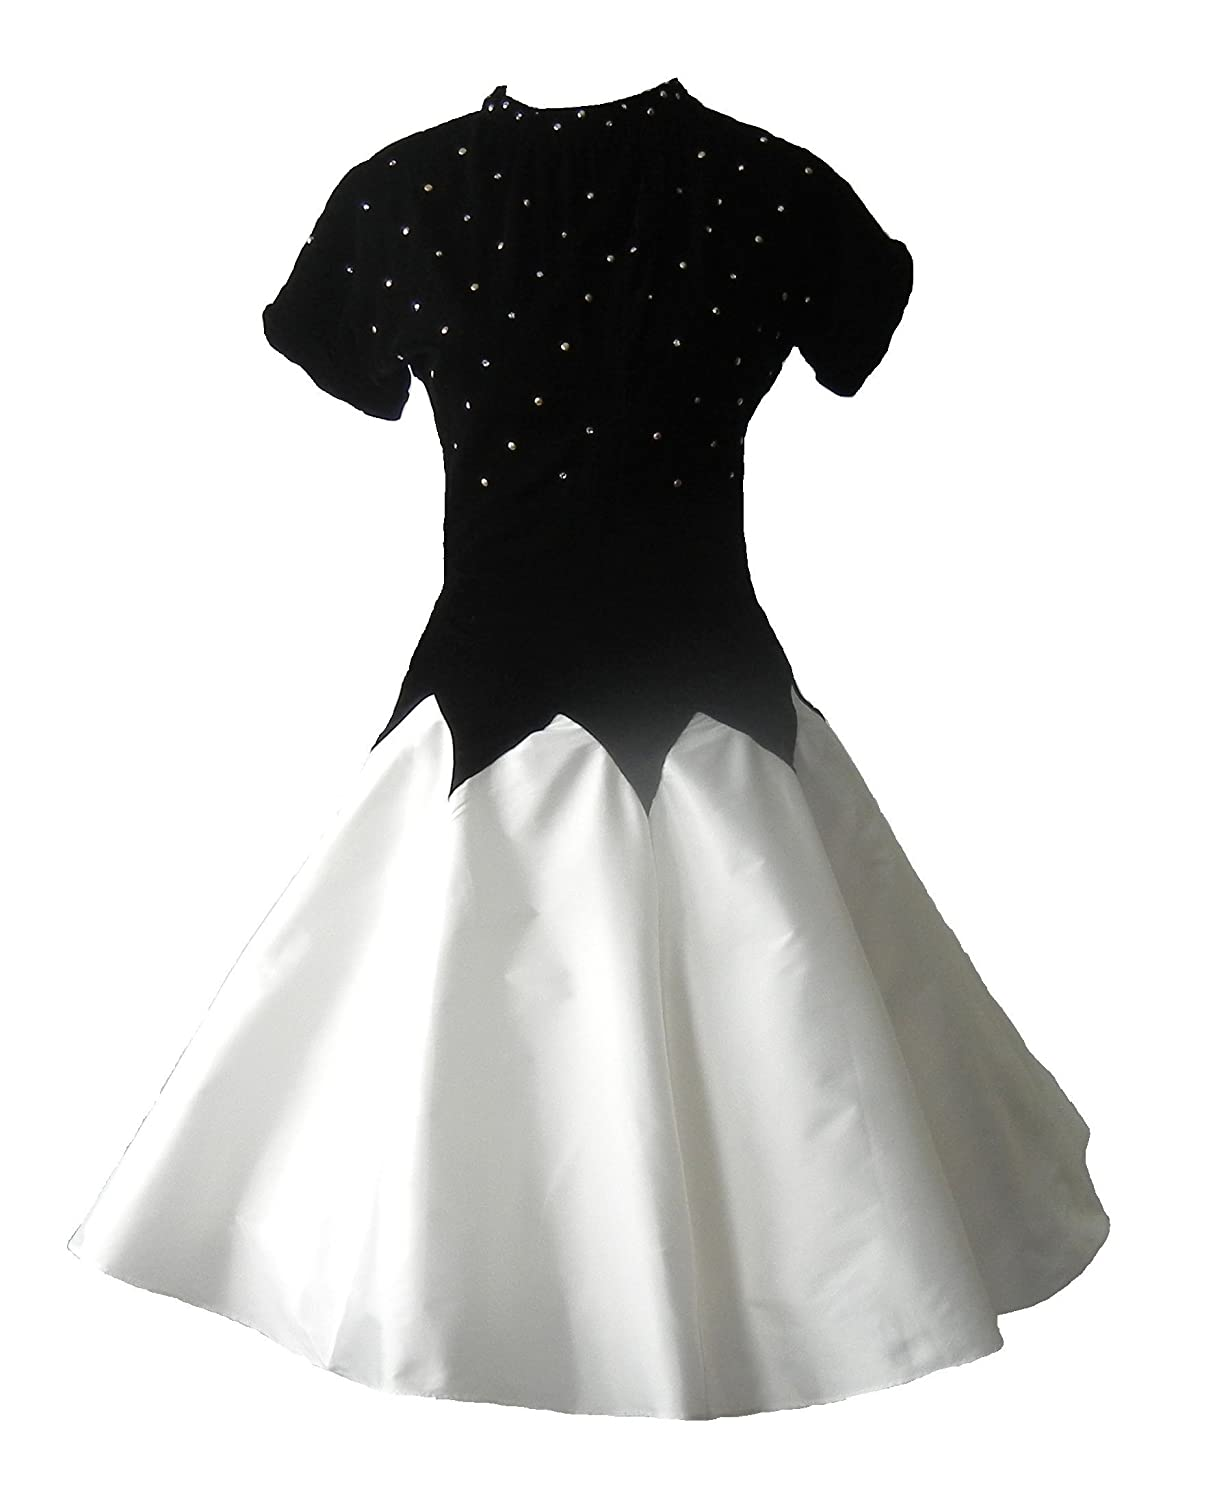 1950s Vintage Style Pin Up Rockabilly Party Dress